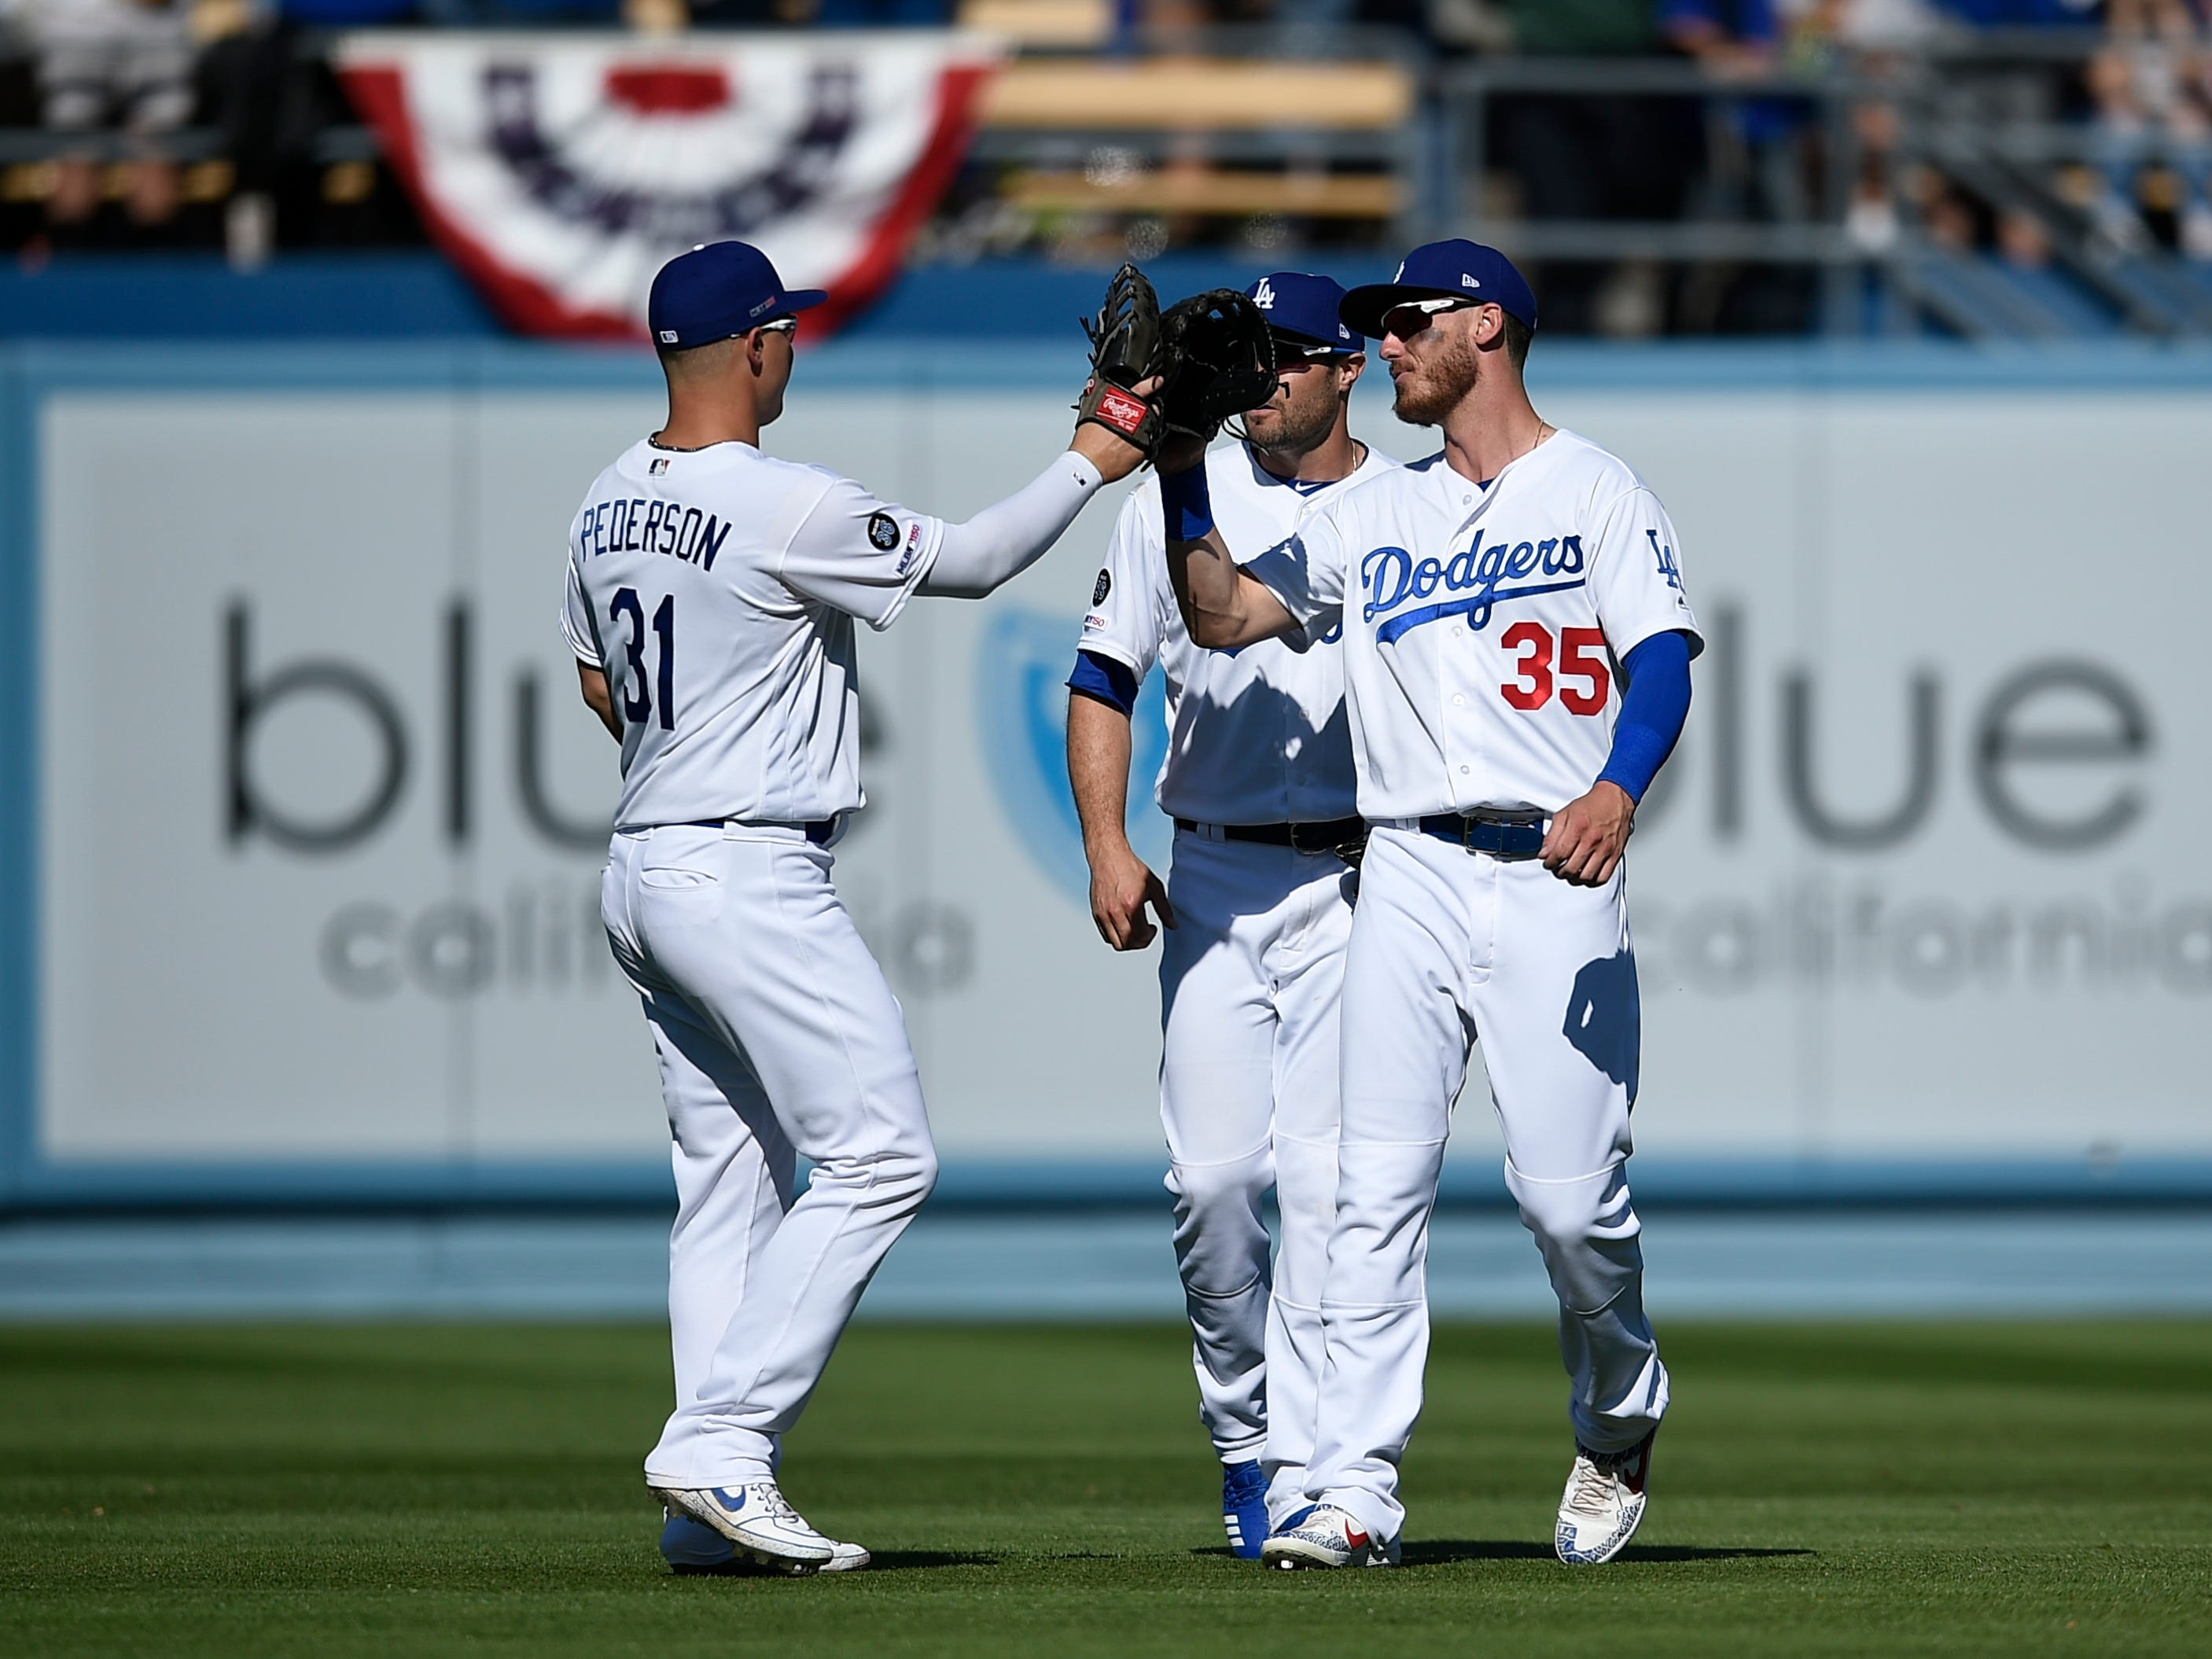 Mar 28, 2019; Los Angeles, CA, USA; Los Angeles Dodgers right fielder Cody Bellinger (35) celebrates with left fielder Joc Pederson (31) after the game as center fielder A.J. Pollock (11) looks on against the Arizona Diamondbacks at Dodger Stadium.